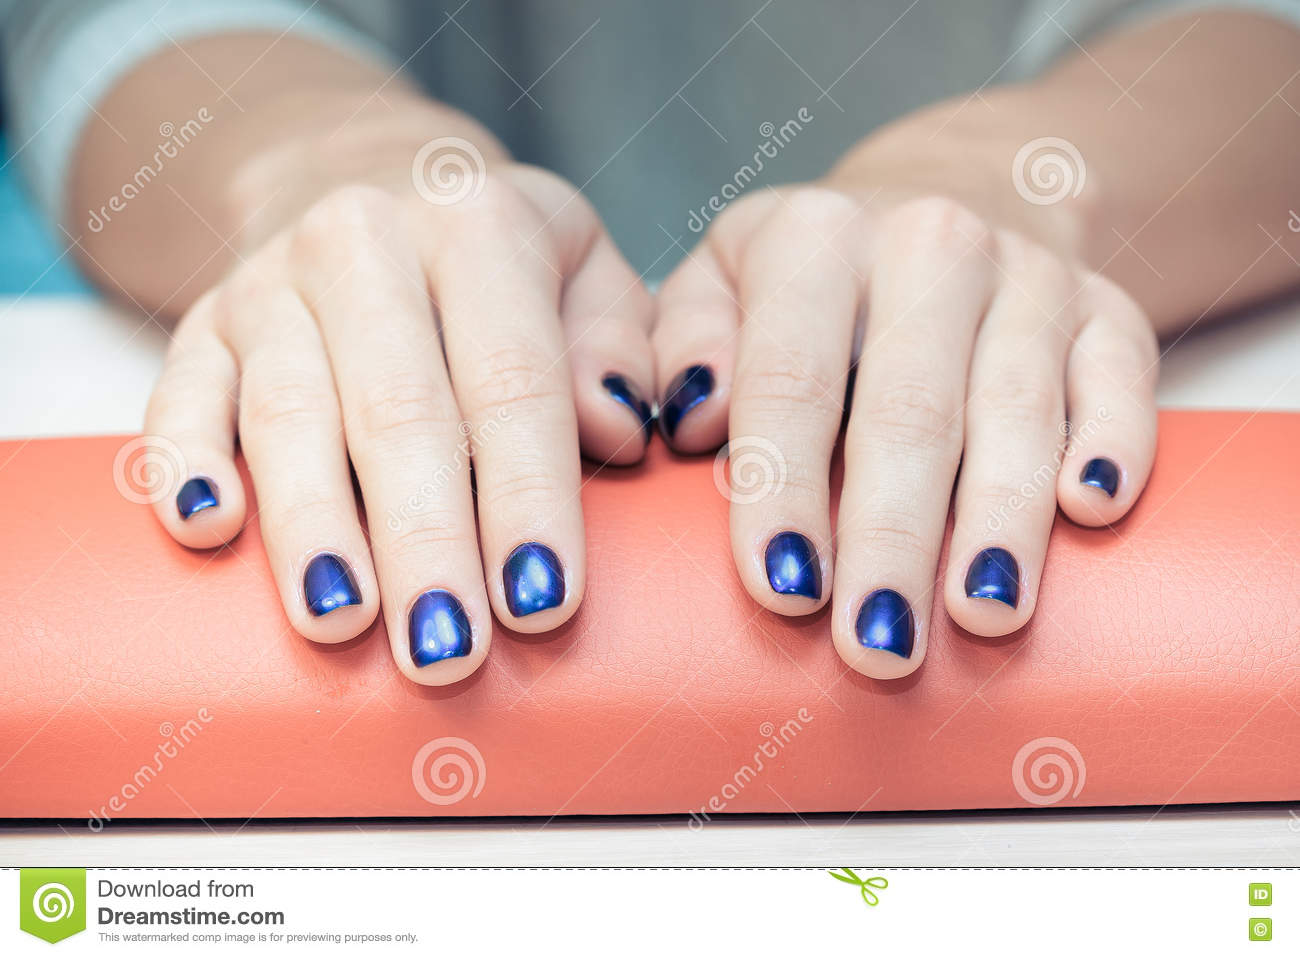 Female Hands With Blue Nail Polish, Close-up Stock Photo - Image of ...